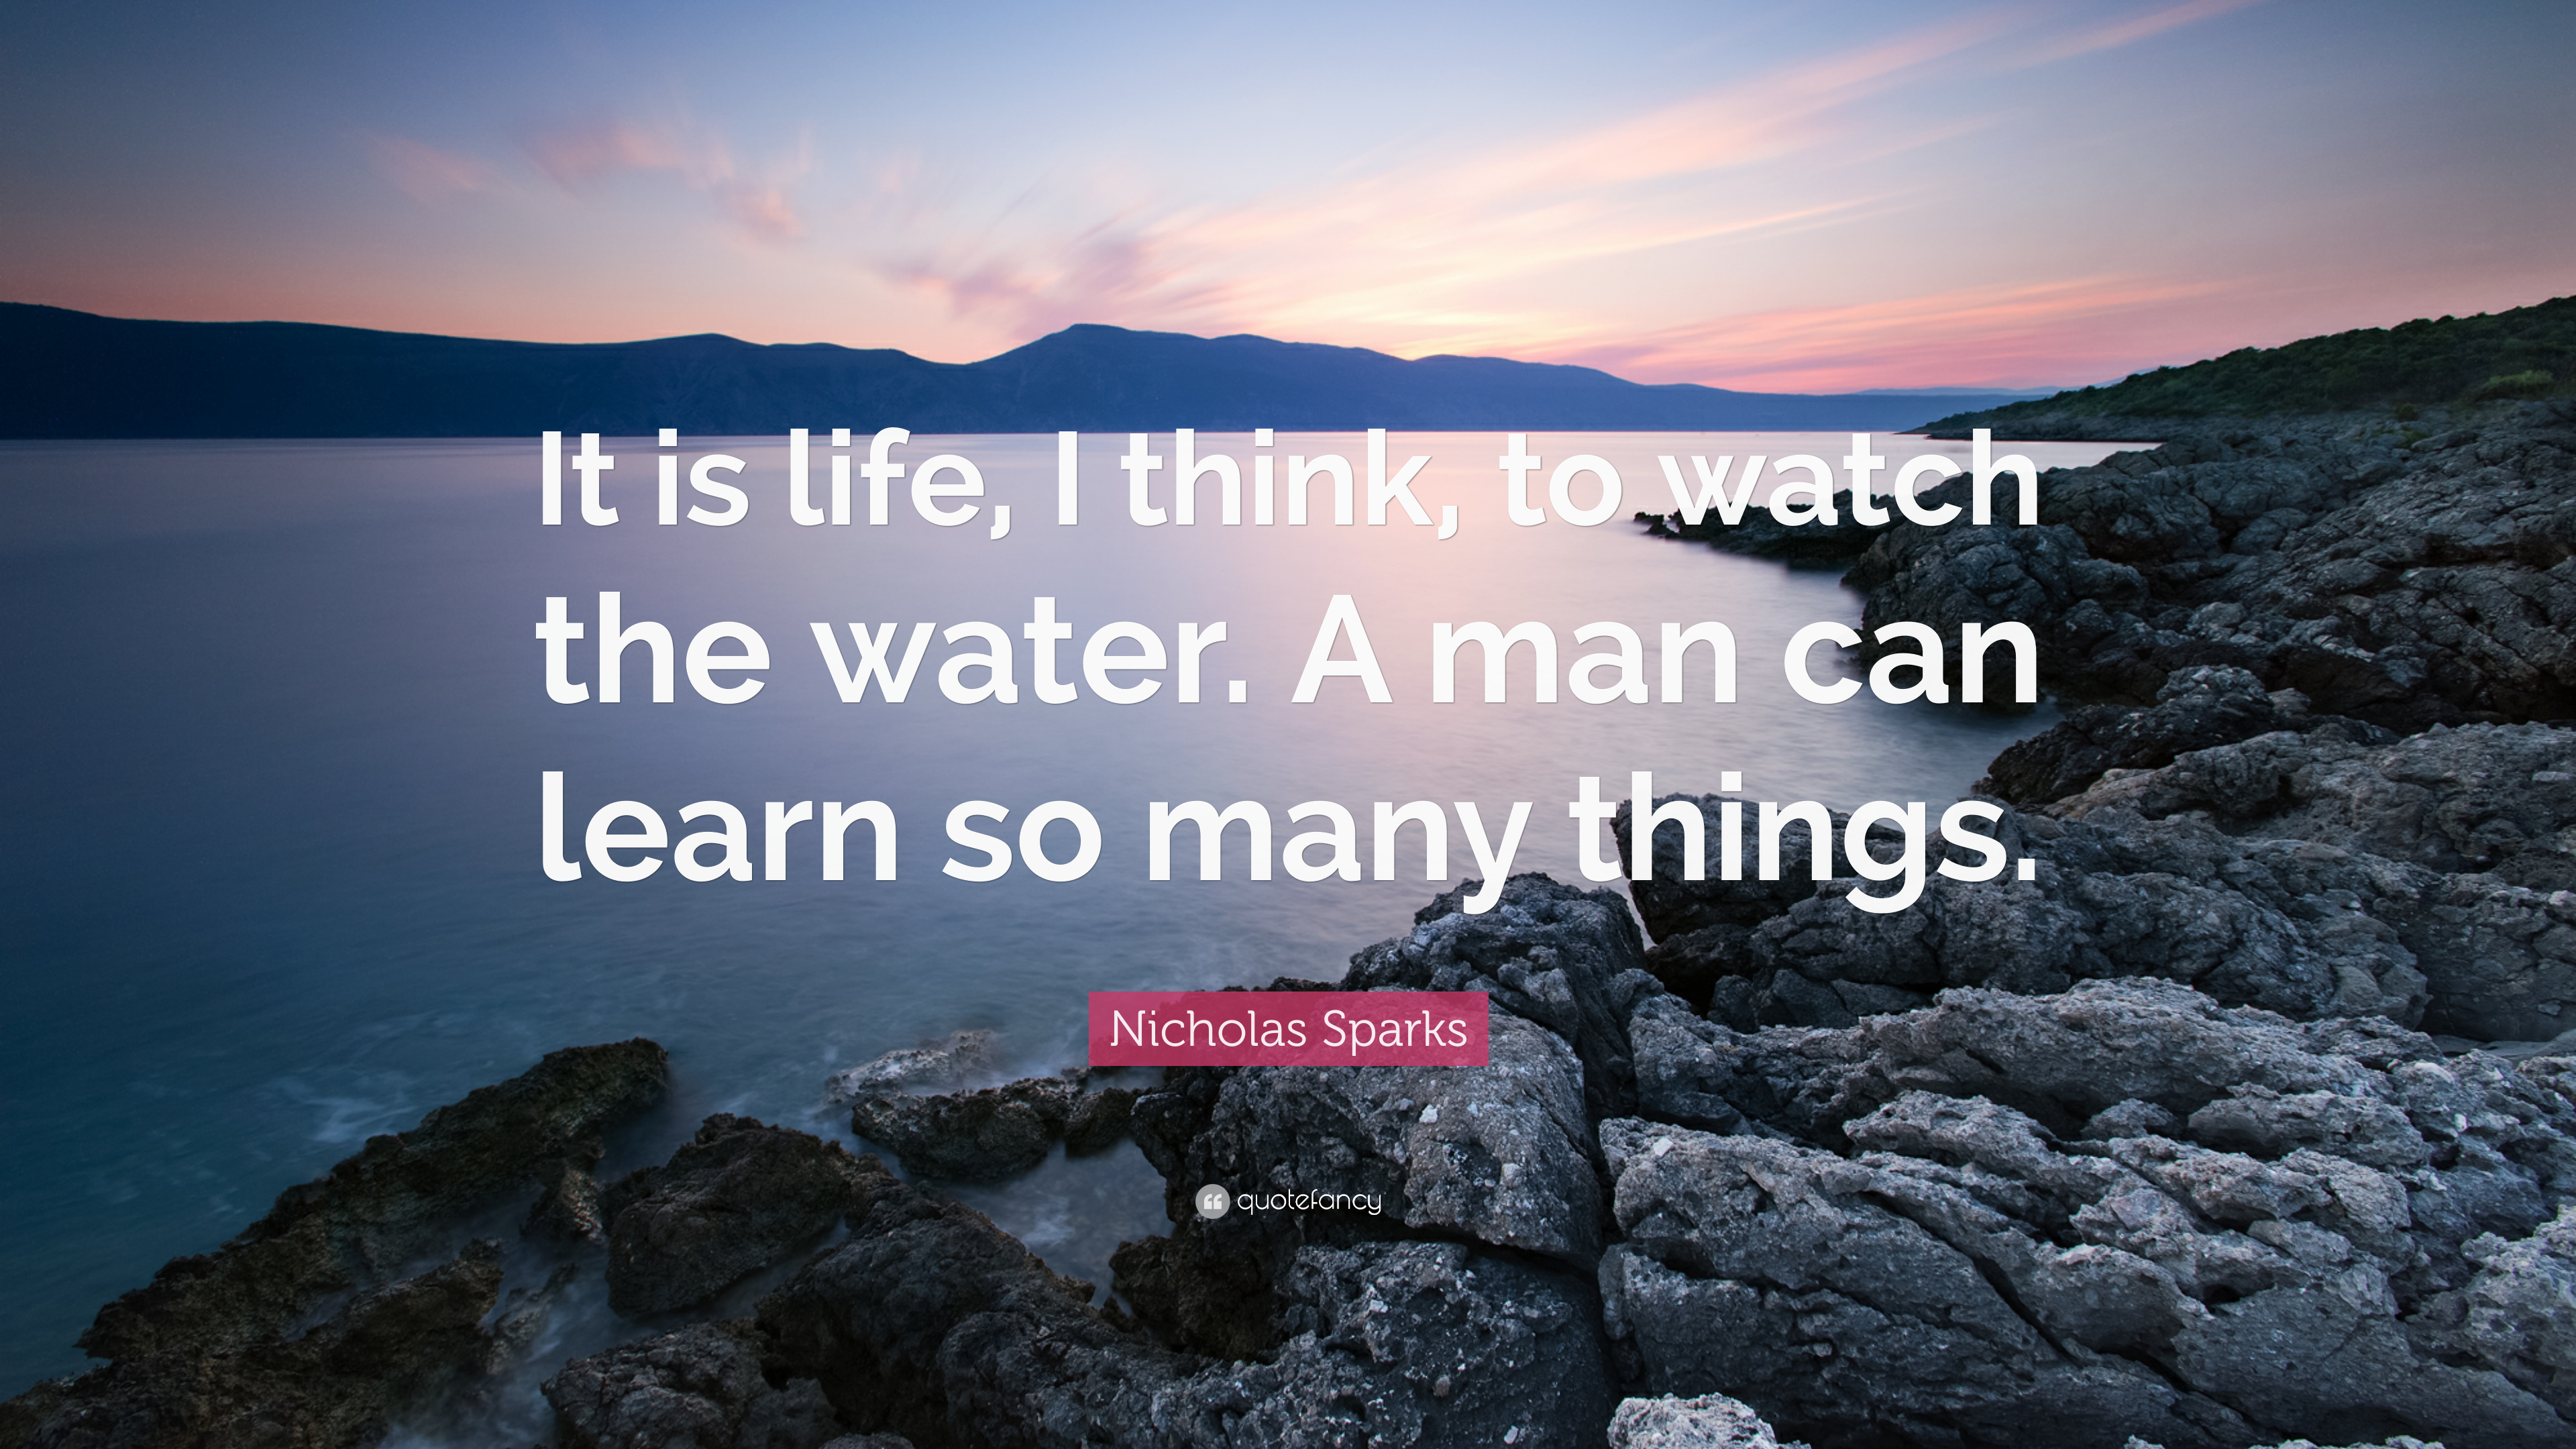 Nicholas Sparks Quote It Is Life I Think To Watch The Water A